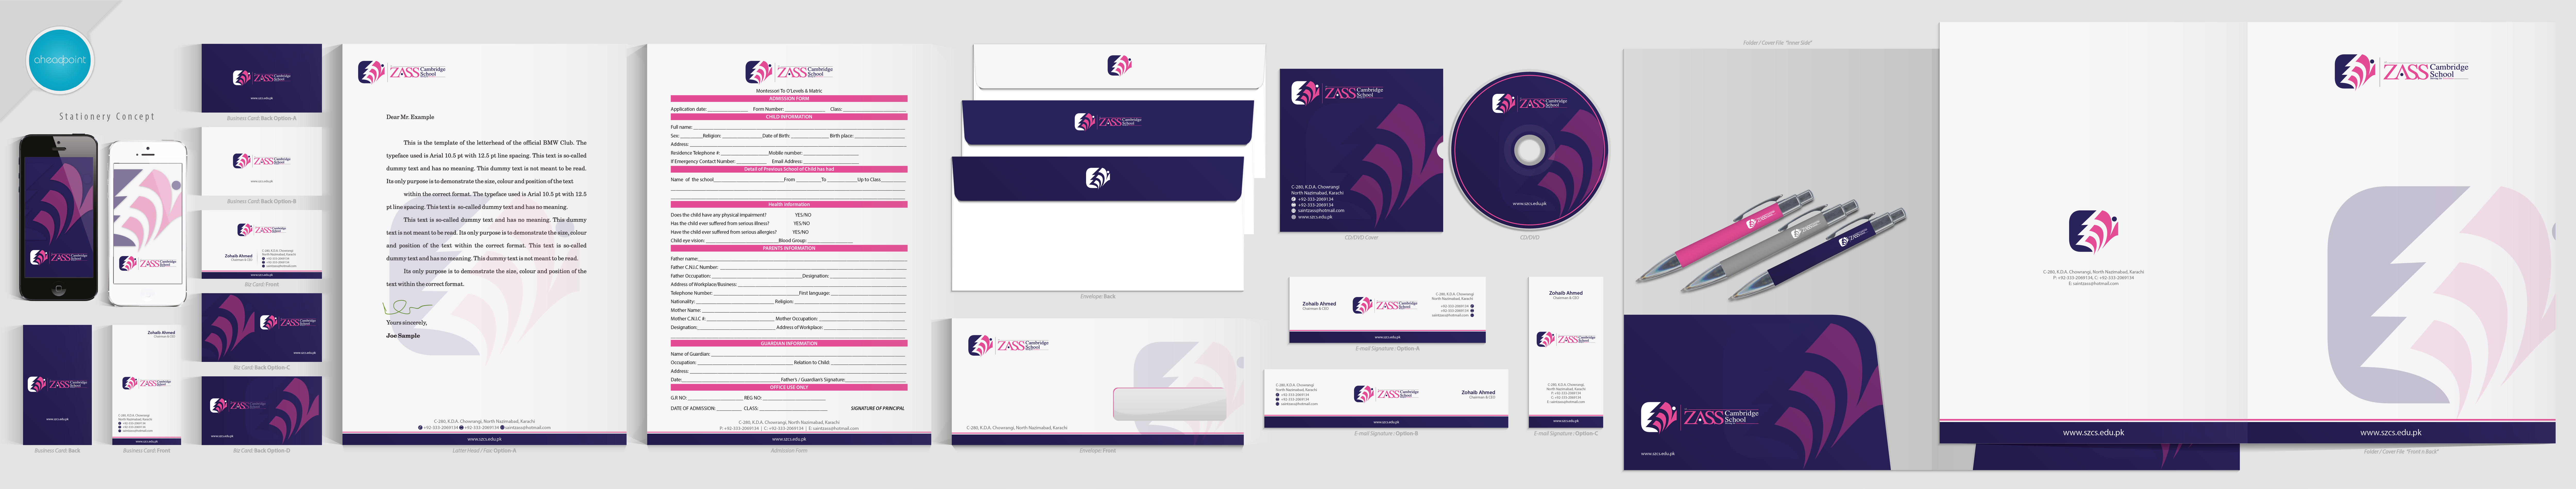 Business Card & Stationery Project (biz card, stationery, word template) - Education